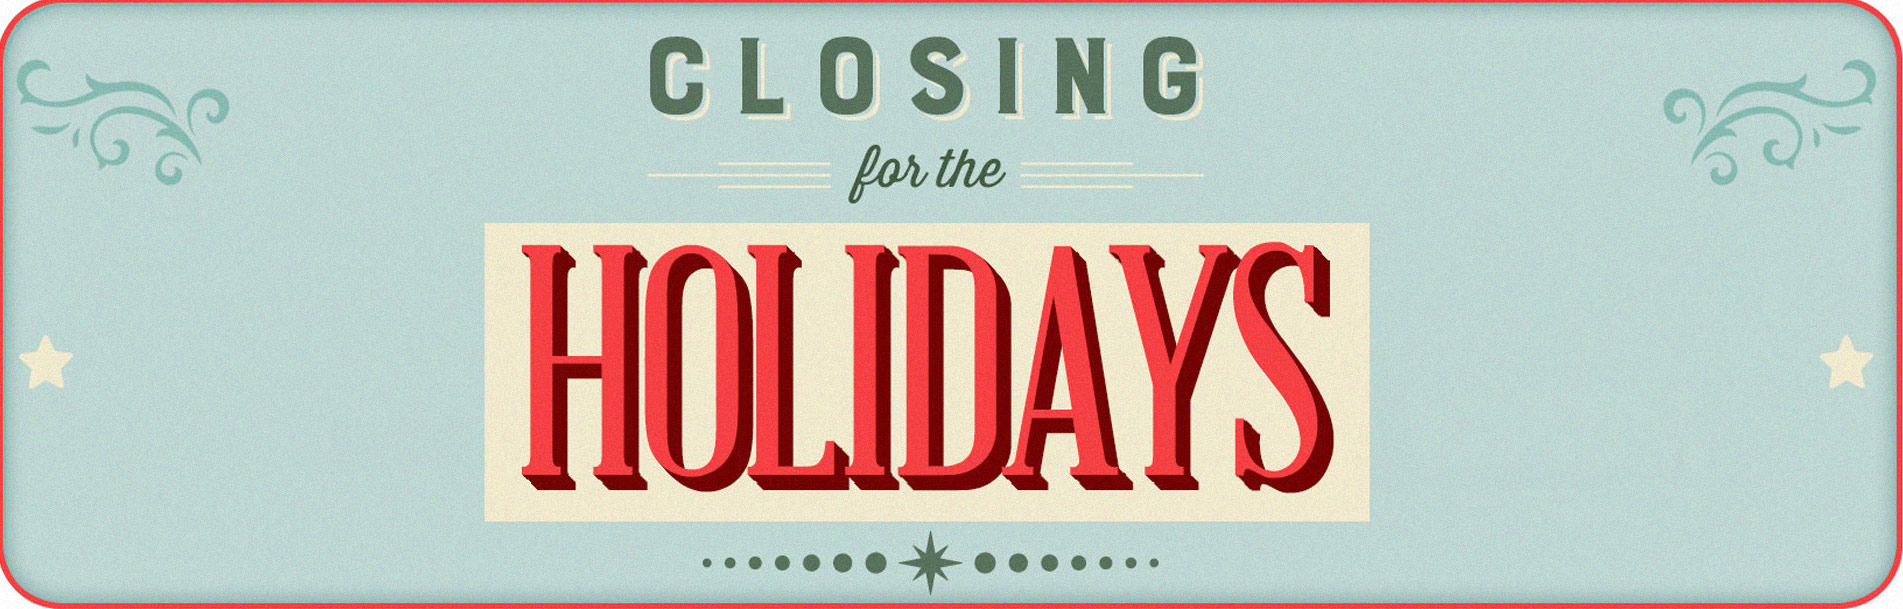 Holiday-Closures